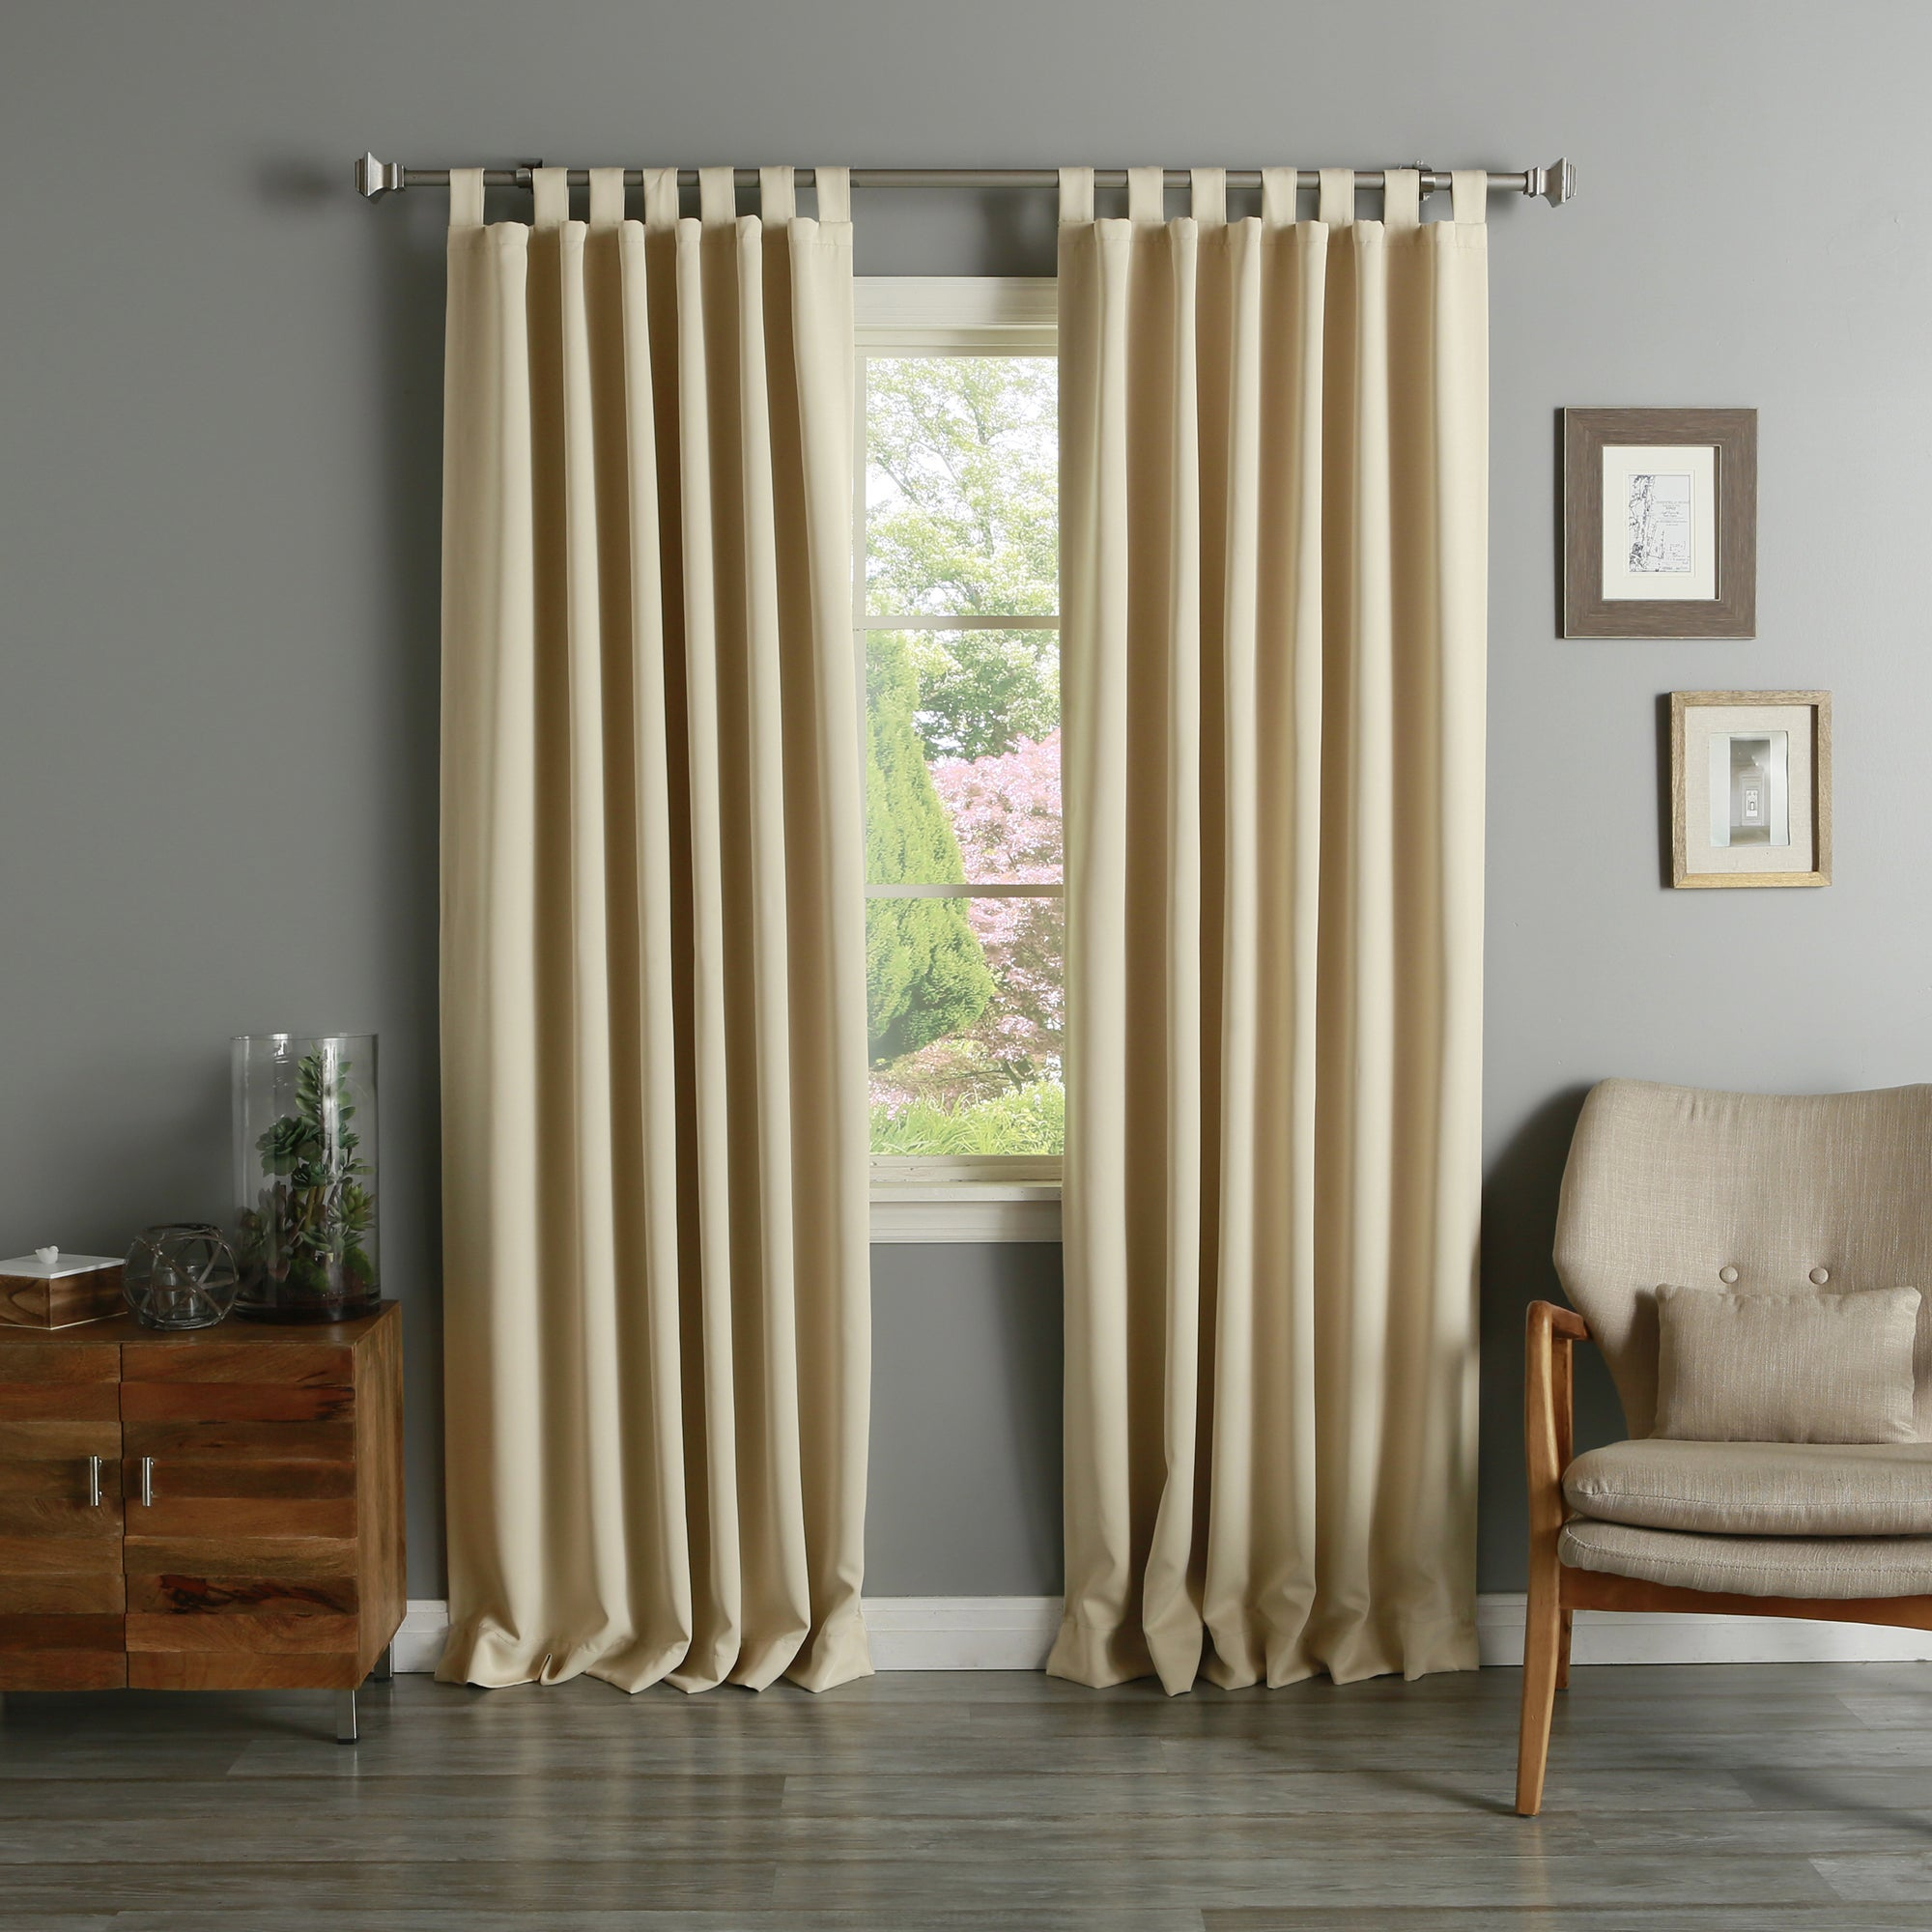 Aurora Home Tab Top Thermal Insulated 95 Inch Blackout Curtain Panel Pair – 52 X 95 Inside Thermal Insulated Blackout Curtain Panel Pairs (View 11 of 30)